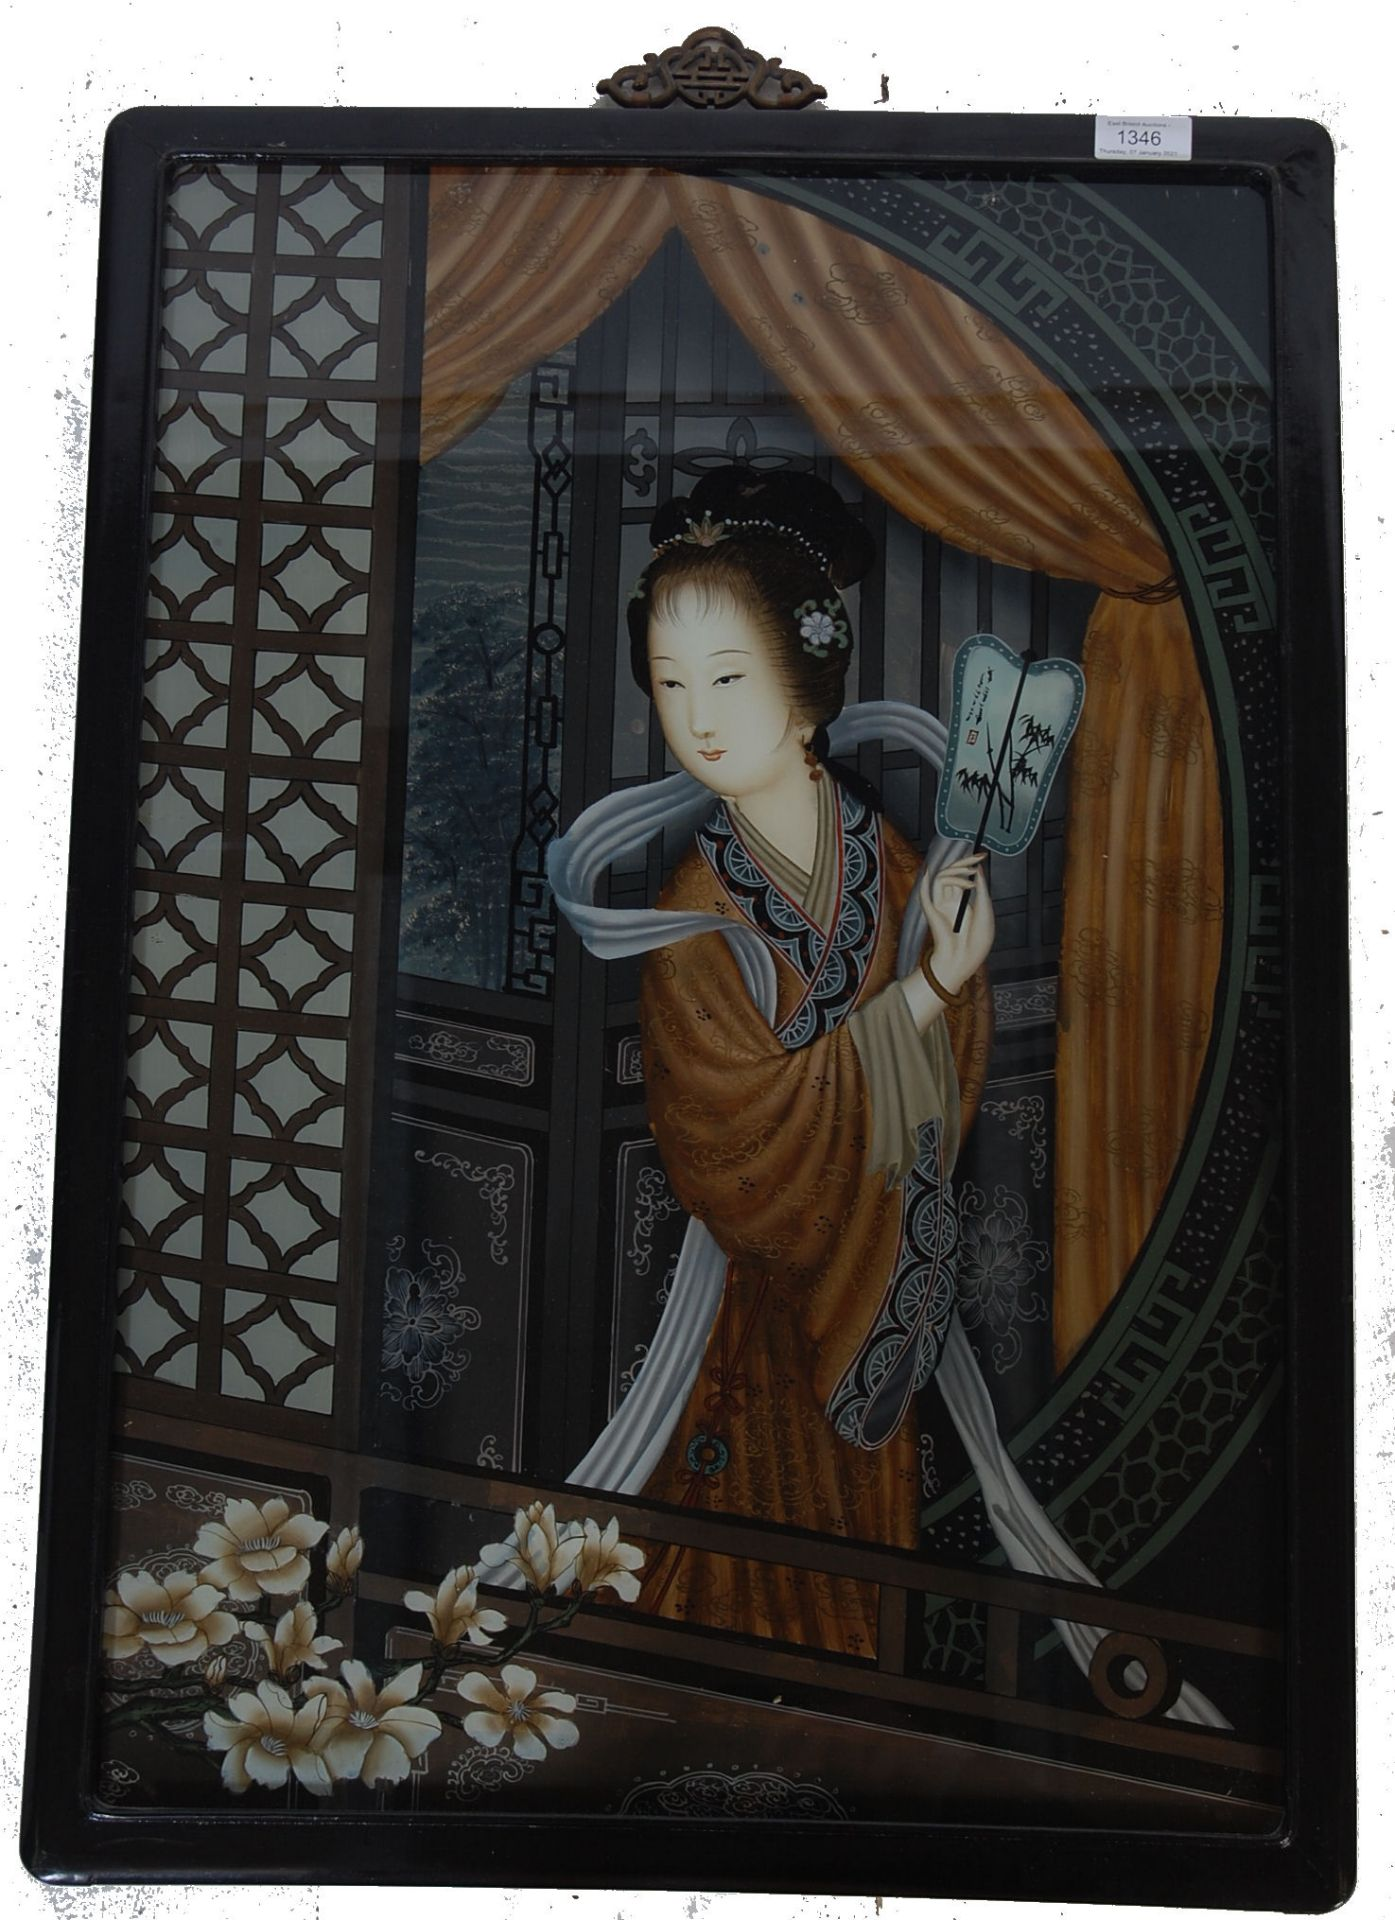 20TH CENTURY ANTIQUE STYLE REVERSED PAIN TING ON GLASS OF A GEISHA